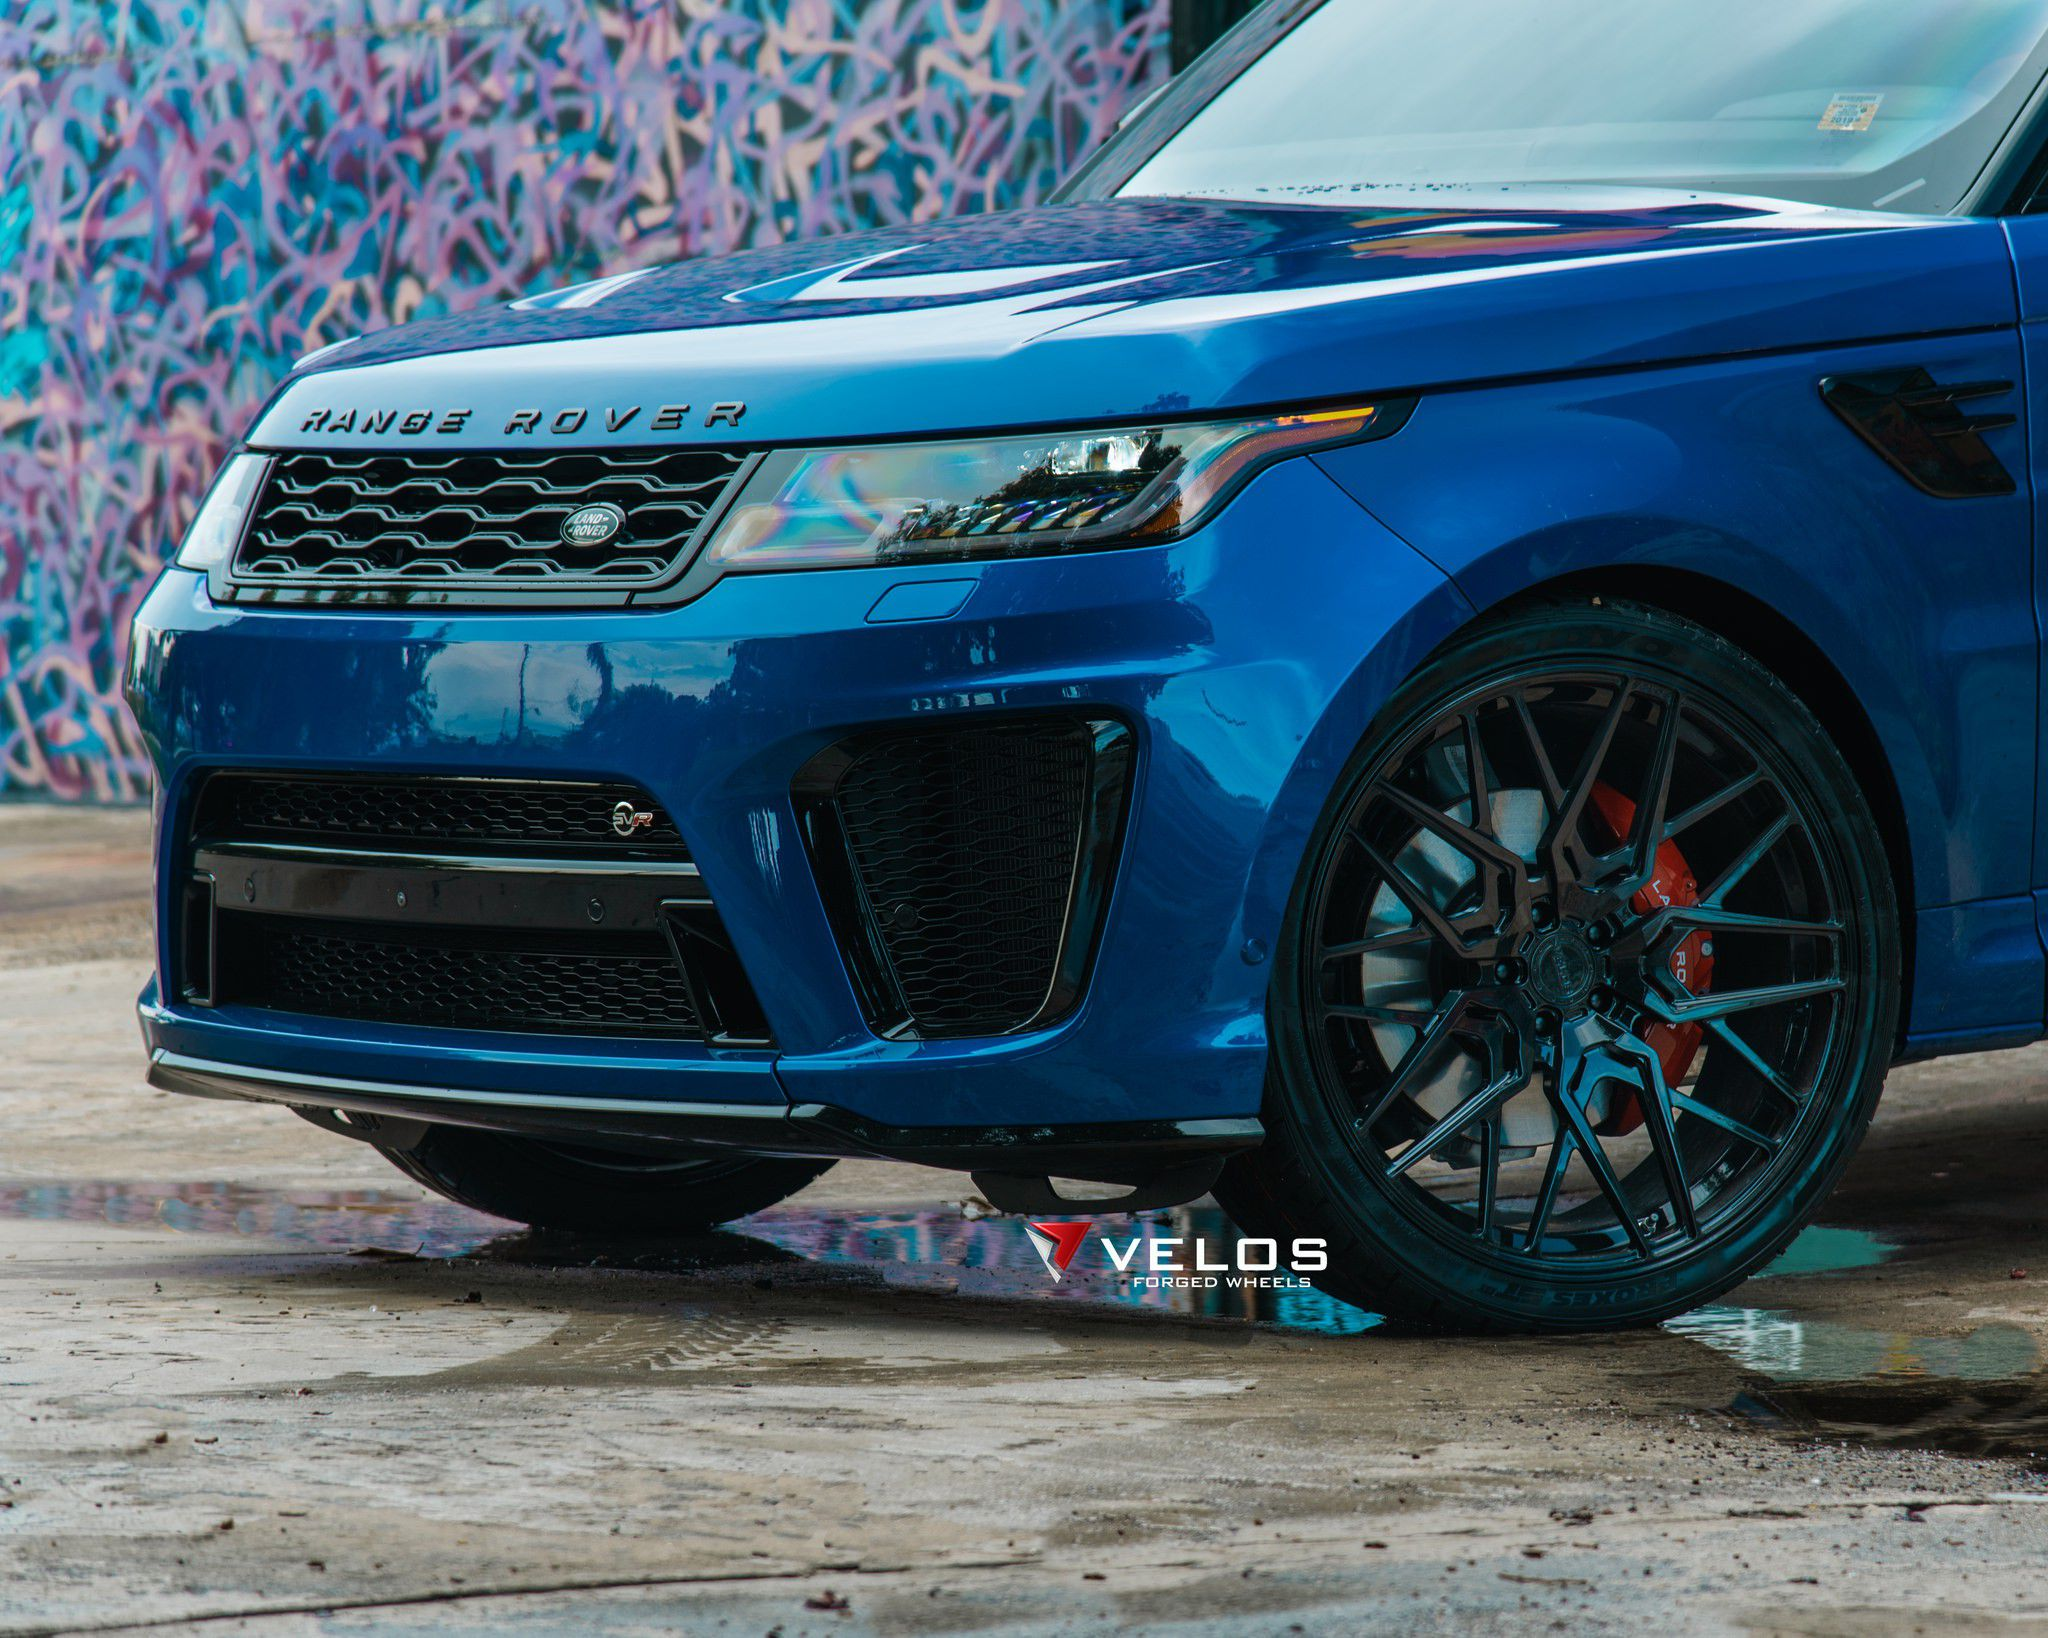 Range Rover SVR on Velos 07_8 wheels